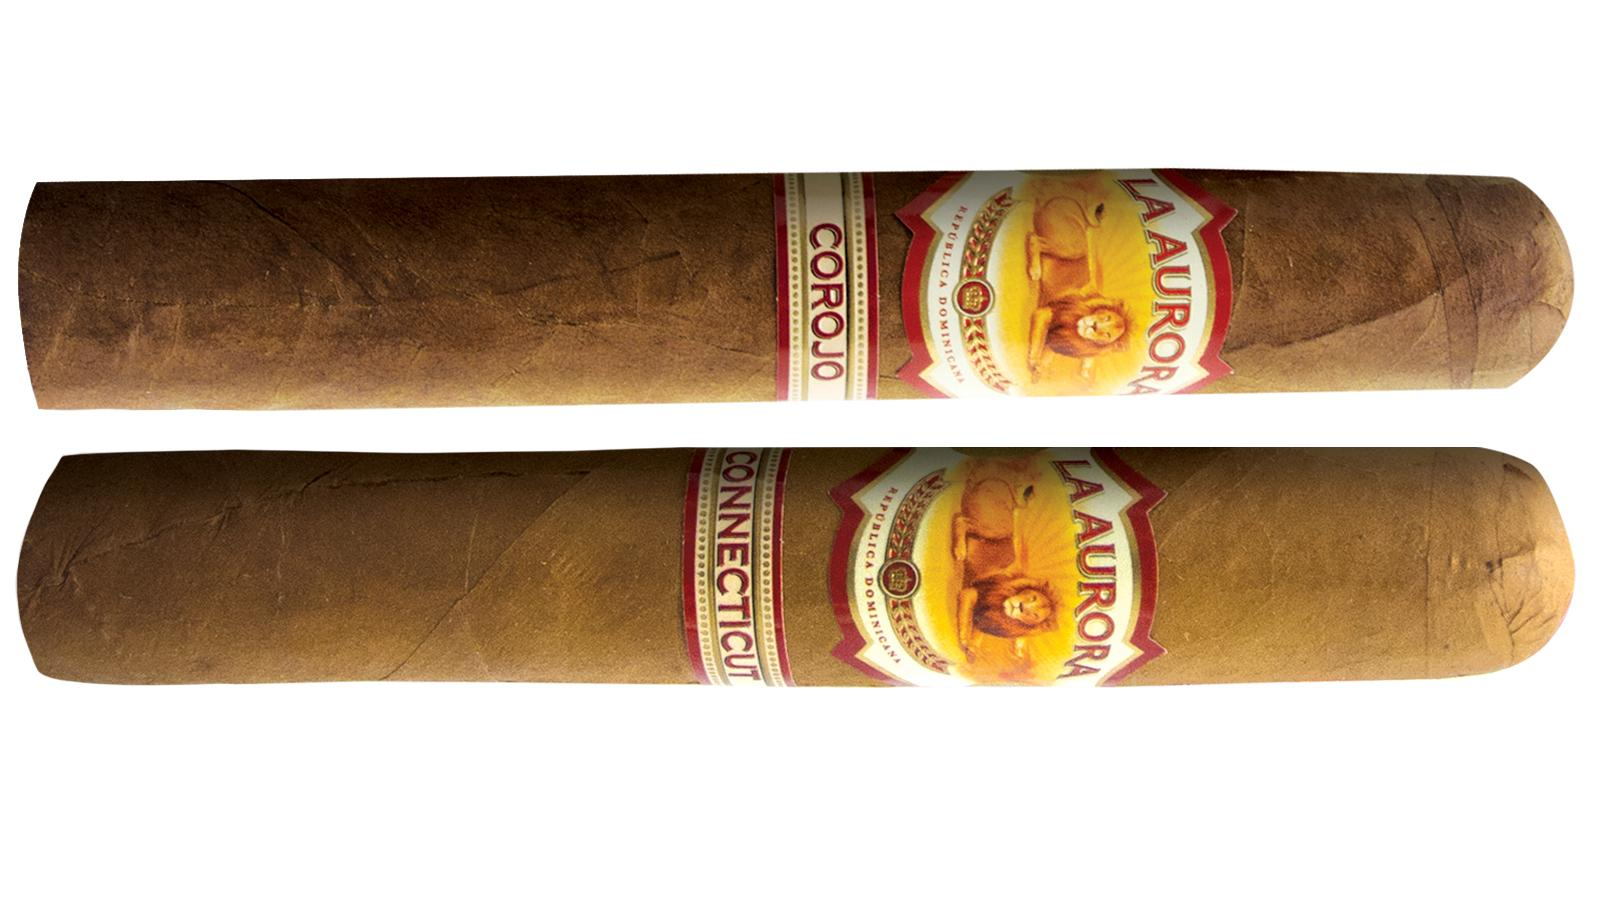 La Aurora Ships New Commemorative 1962 Corojo and 1987 Connecticut Blends